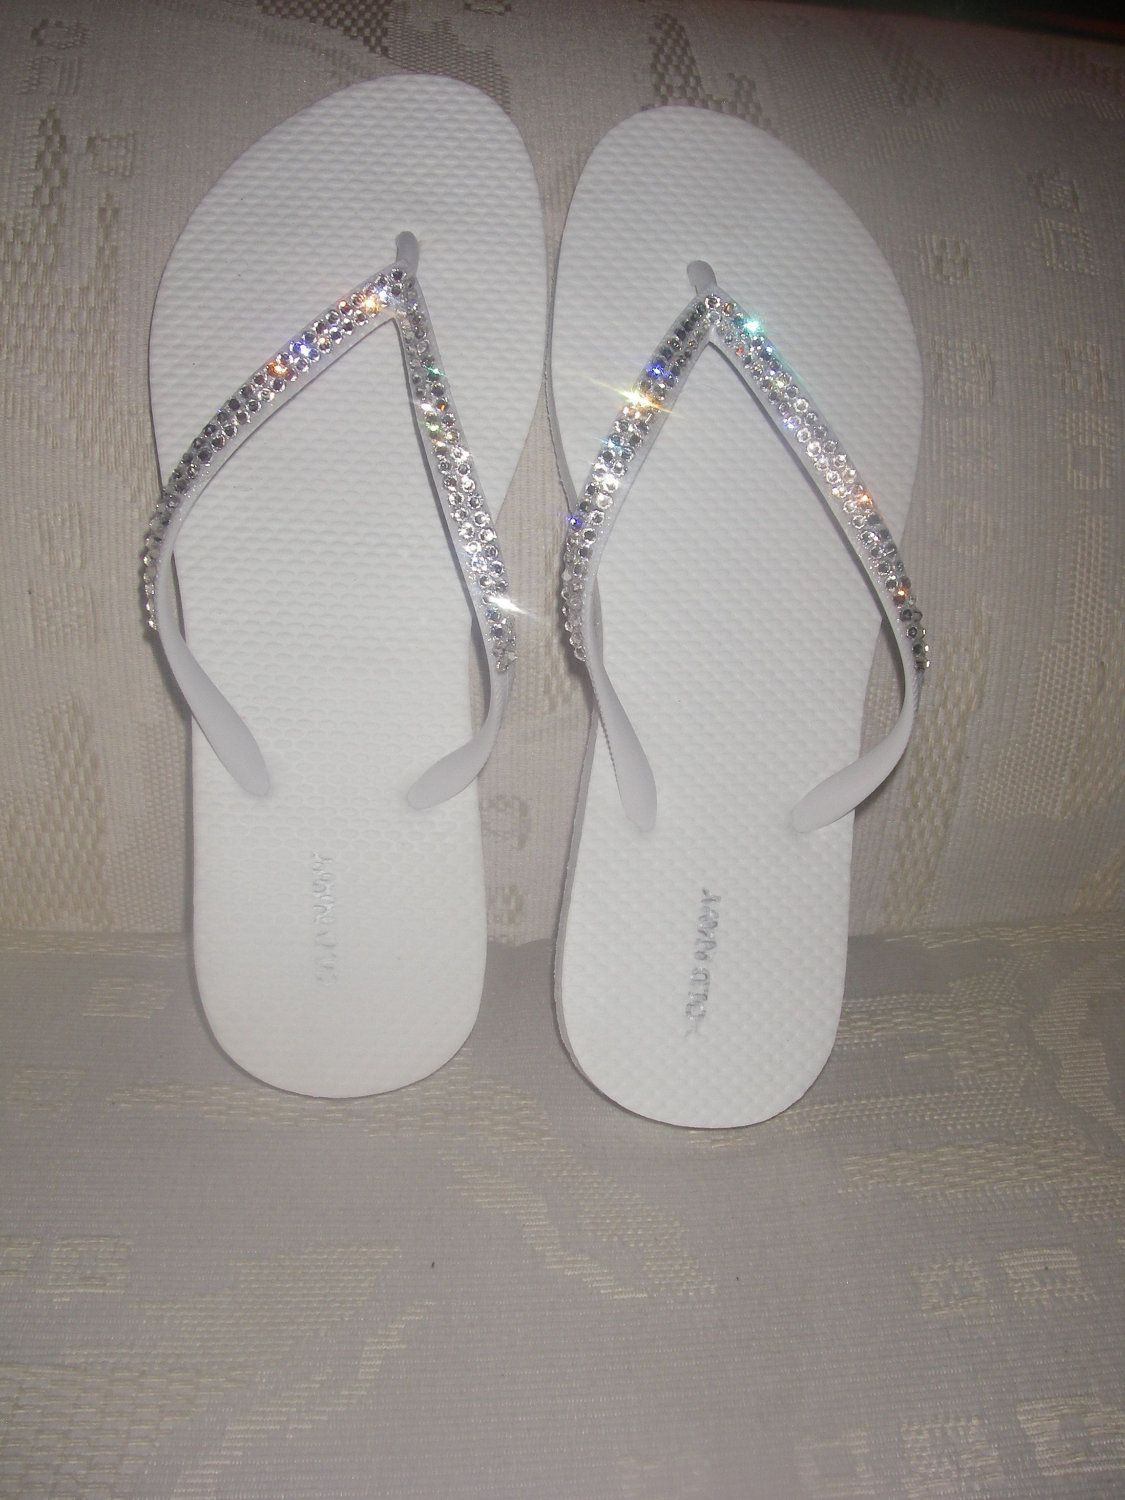 ba29b6daded809 Perfect for a Wedding-- REAL Swarovski Crystals on White Flip Flops- Size 8